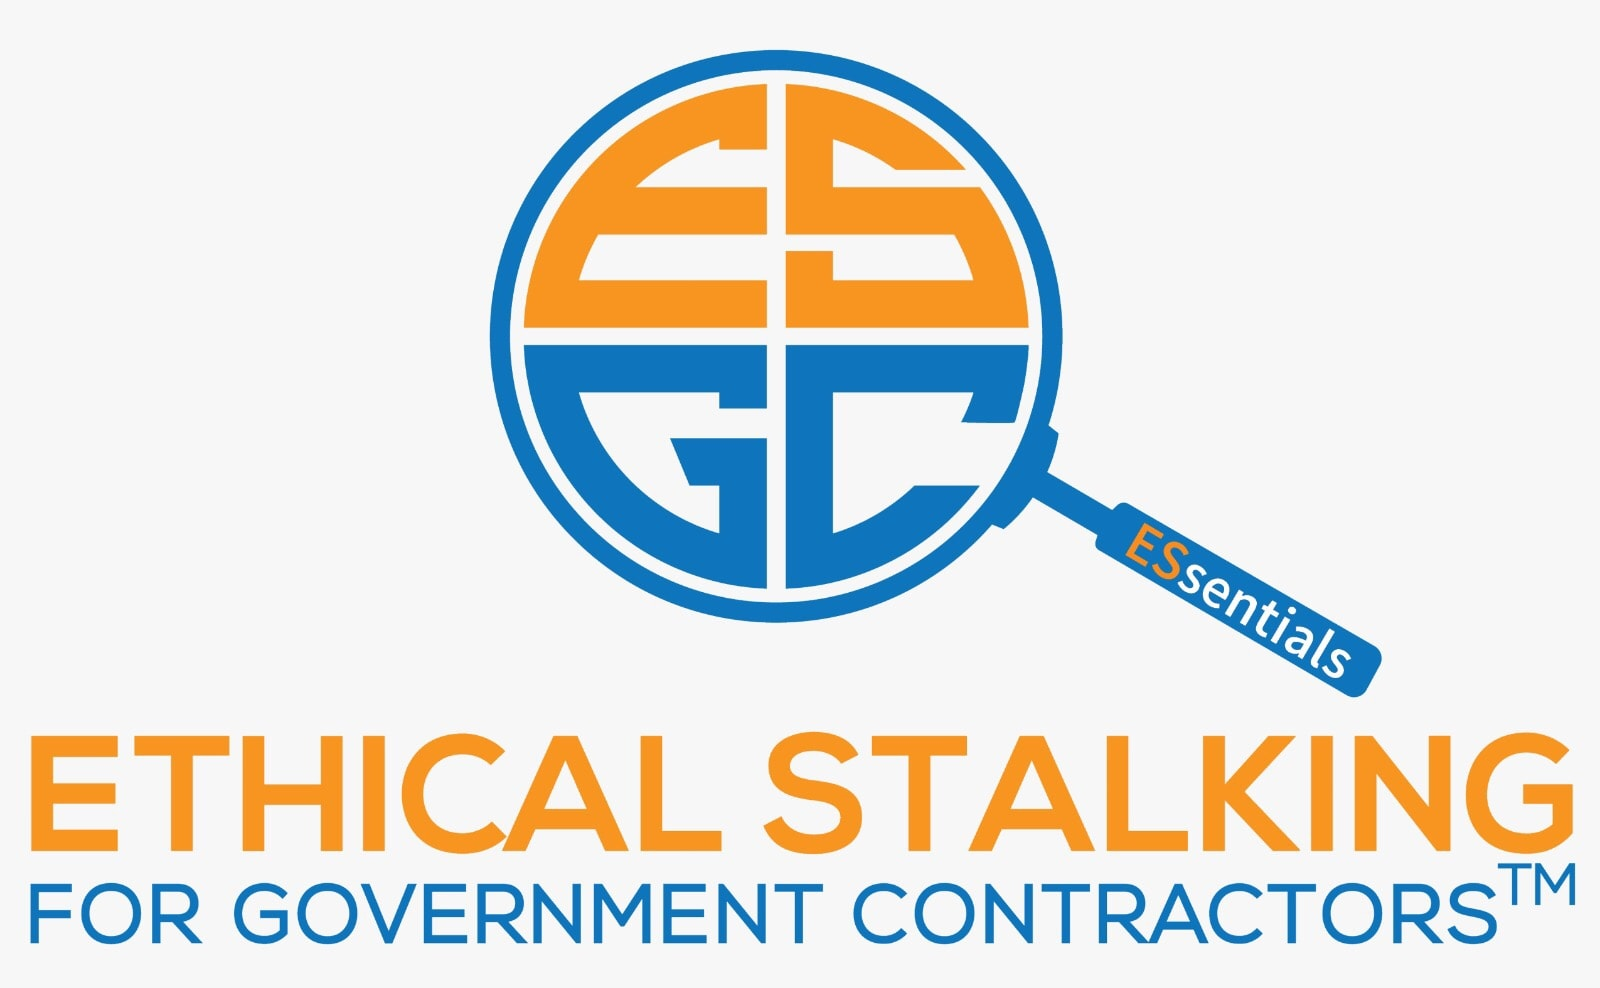 Ethical Stalking For Government Contractors